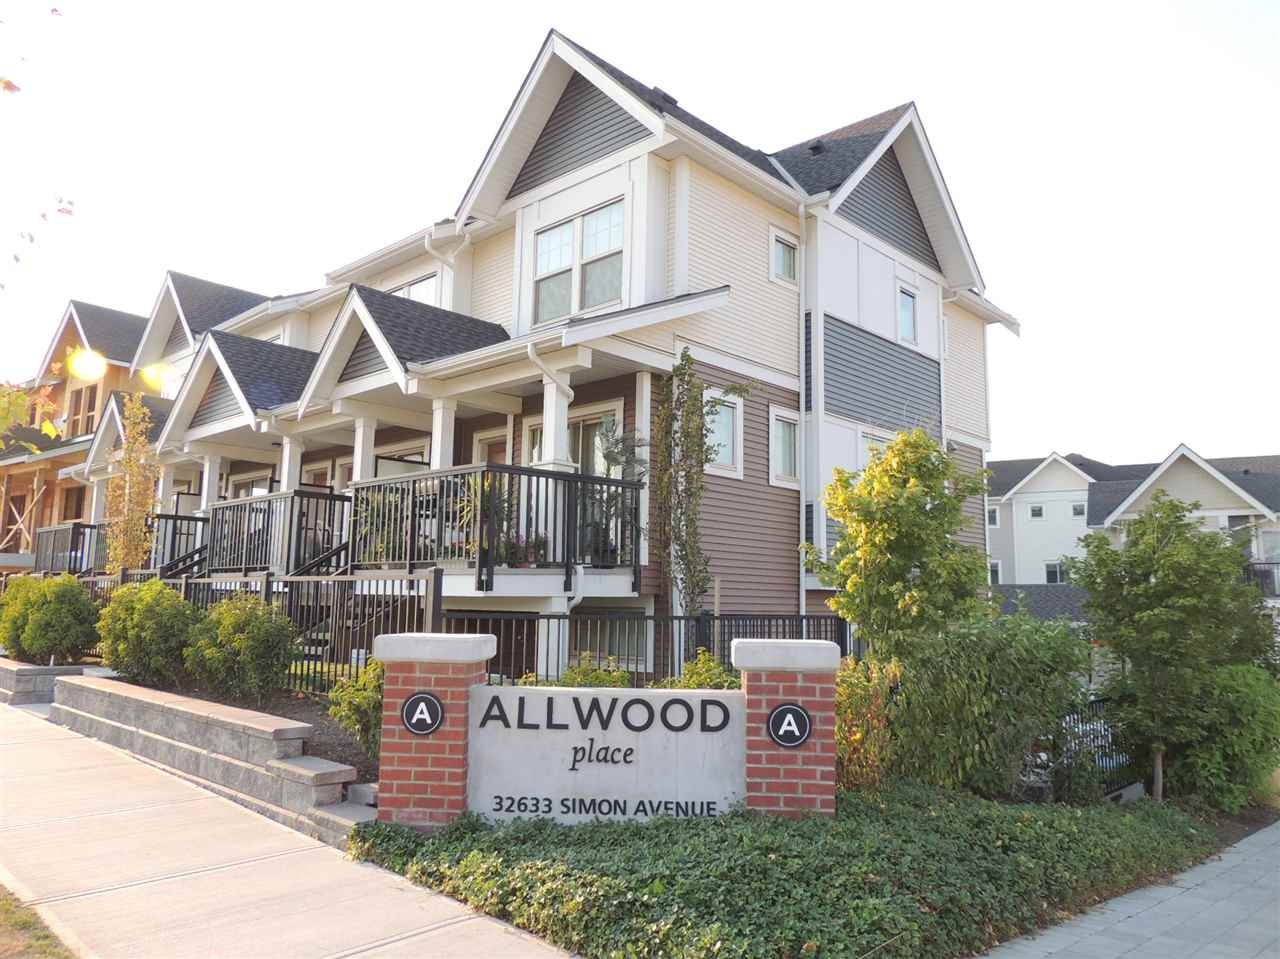 4 - 2800 Allwood Street, Abbotsford | Sold? Ask us | Zolo ca